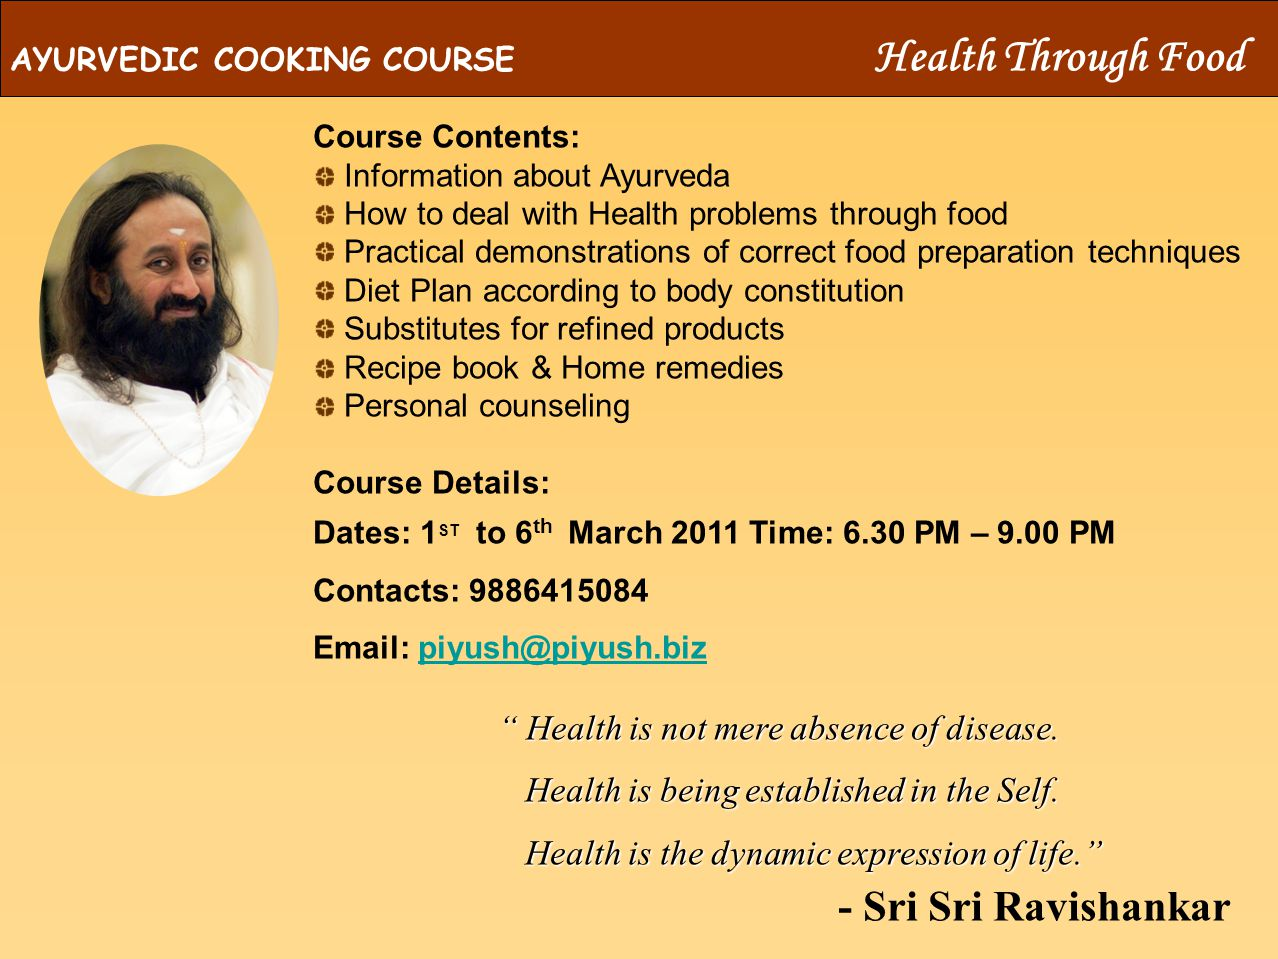 The Art Of Living HEALTH THROUGH FOOD AYURVEDIC COOKING COURSE